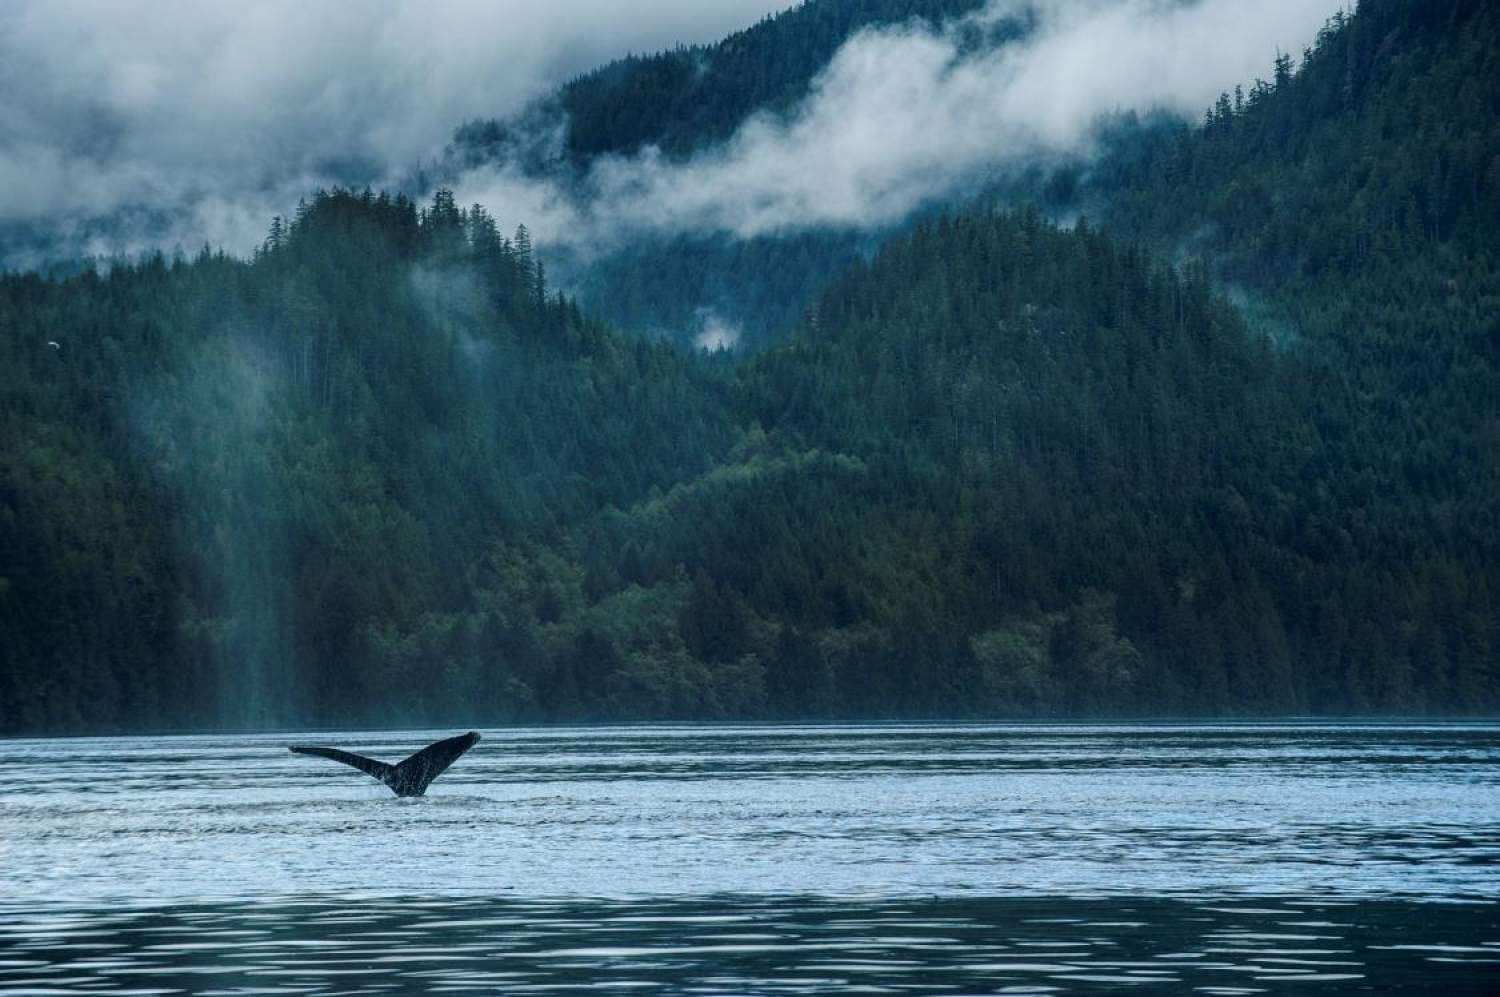 Whale watching in Vancouver